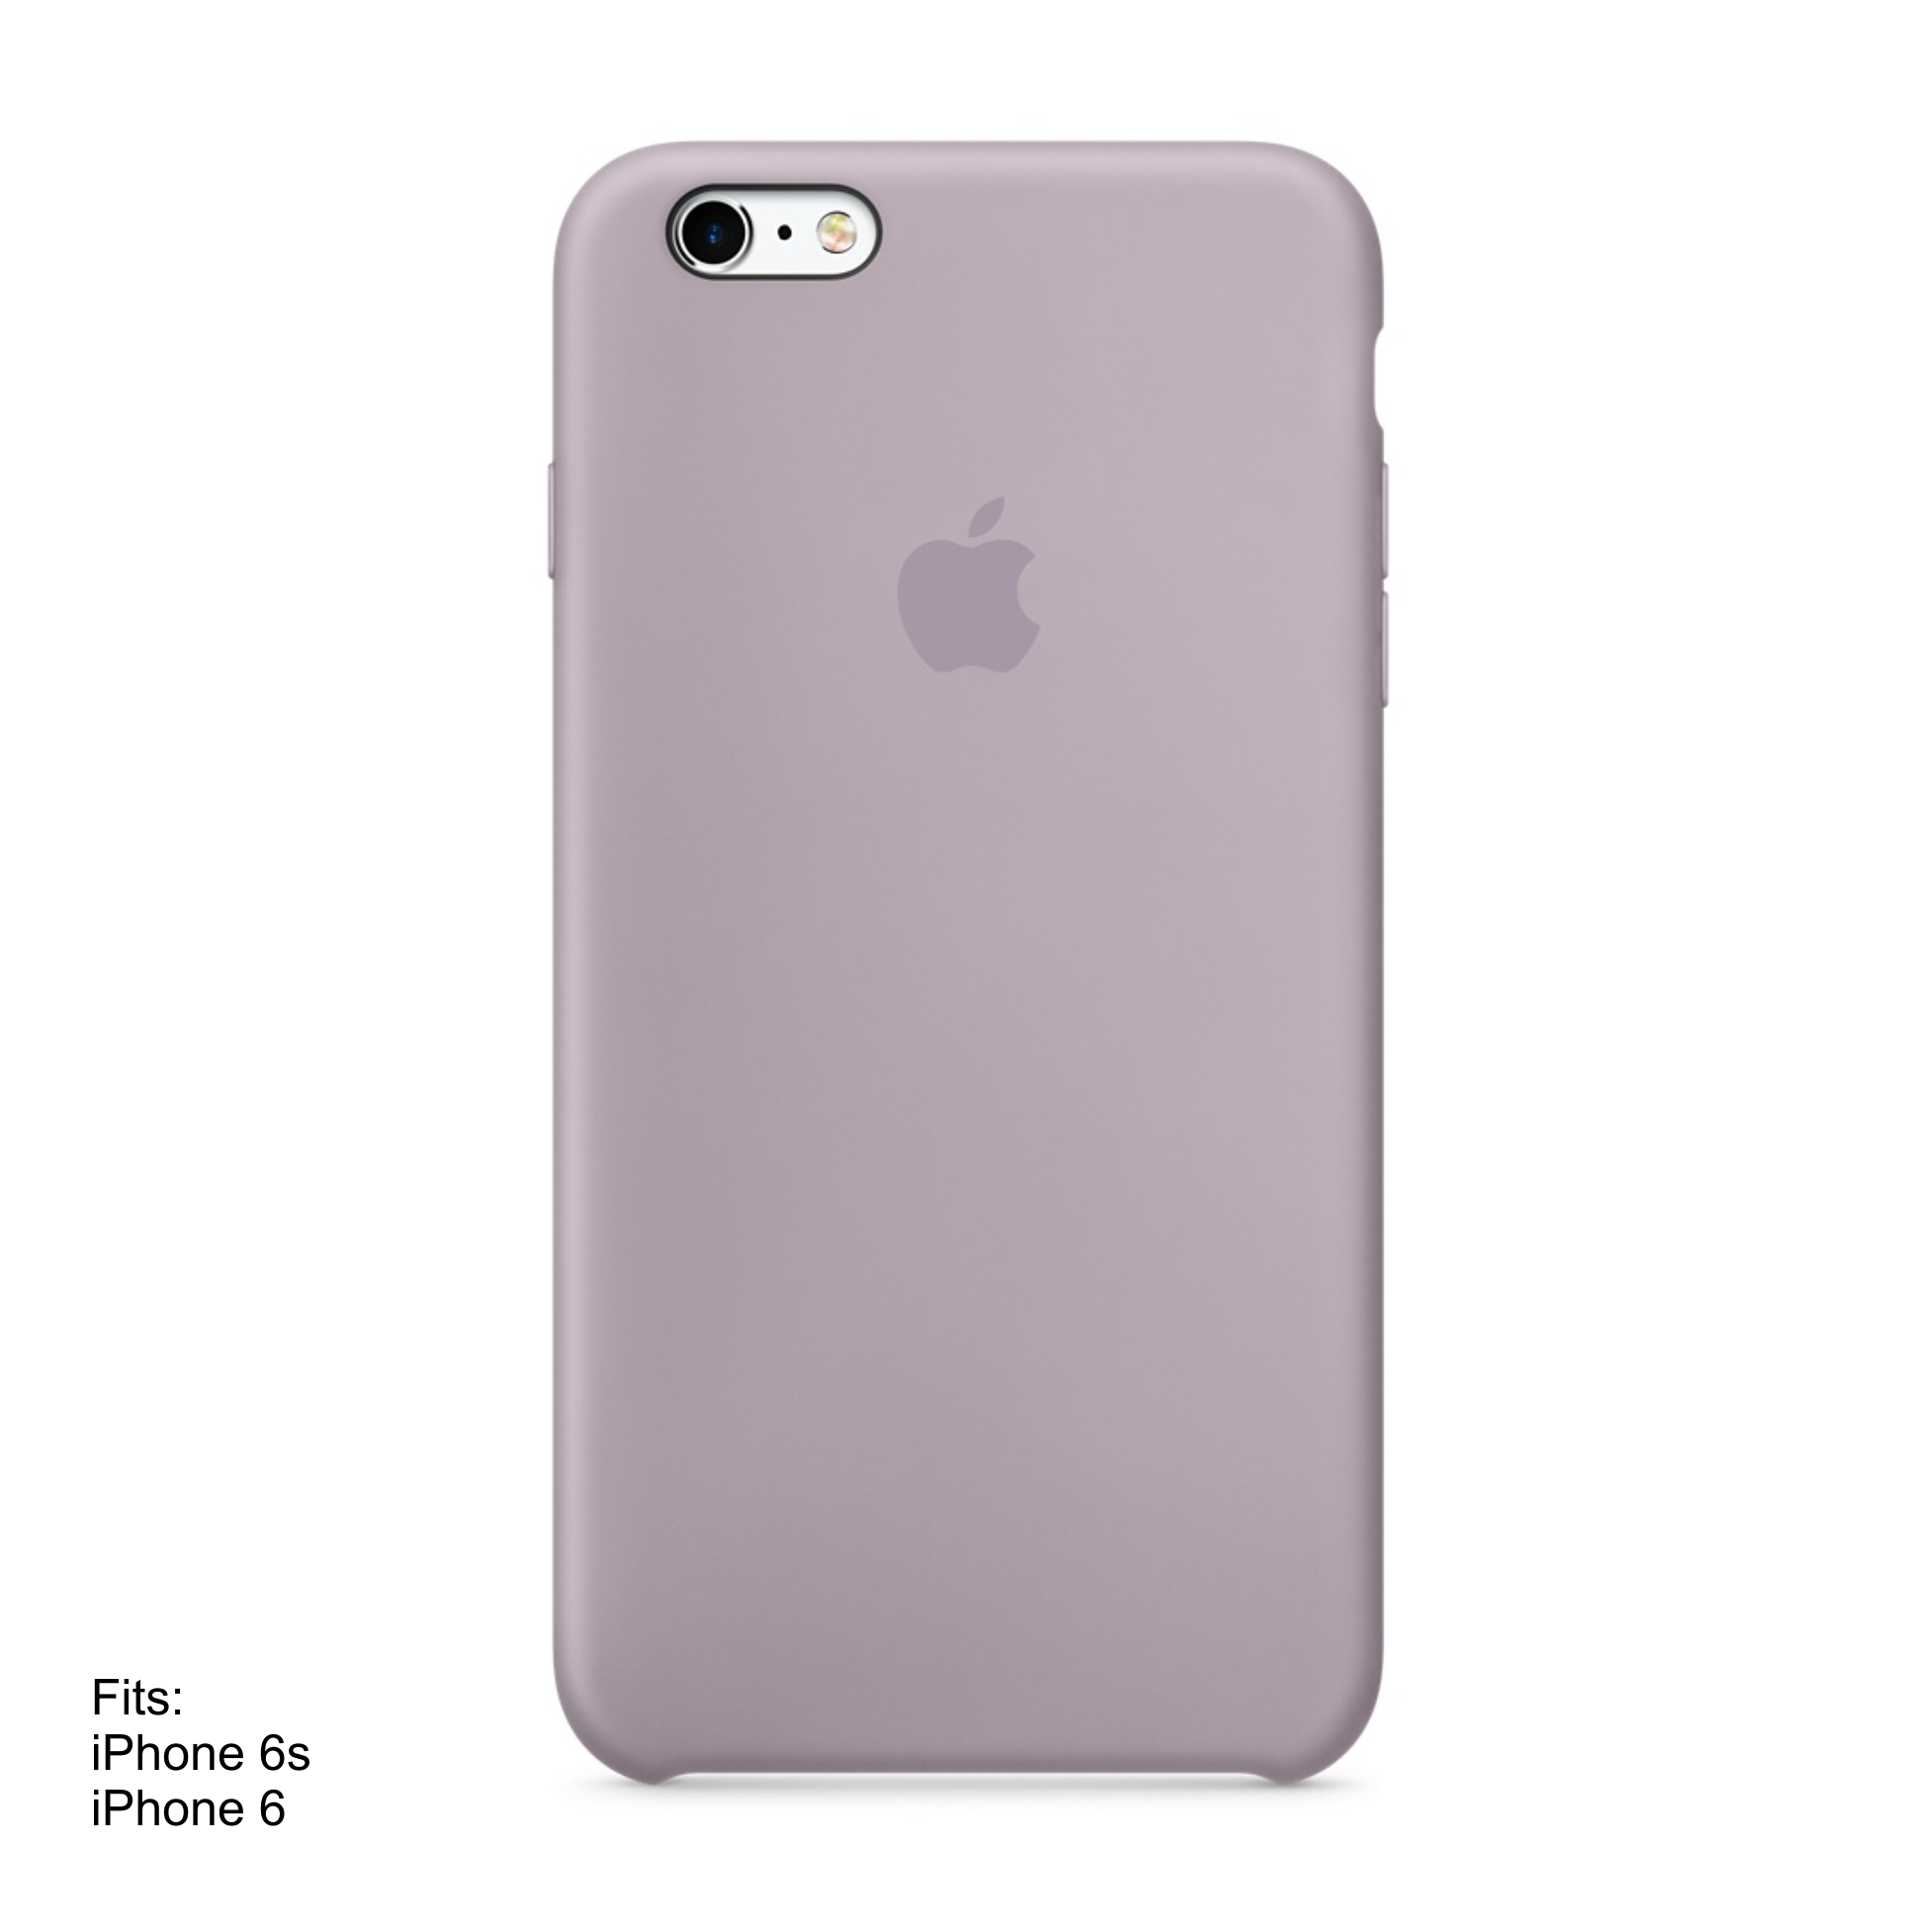 Engraved Apple Iphone 6 Case Silicone Plover The Open Source